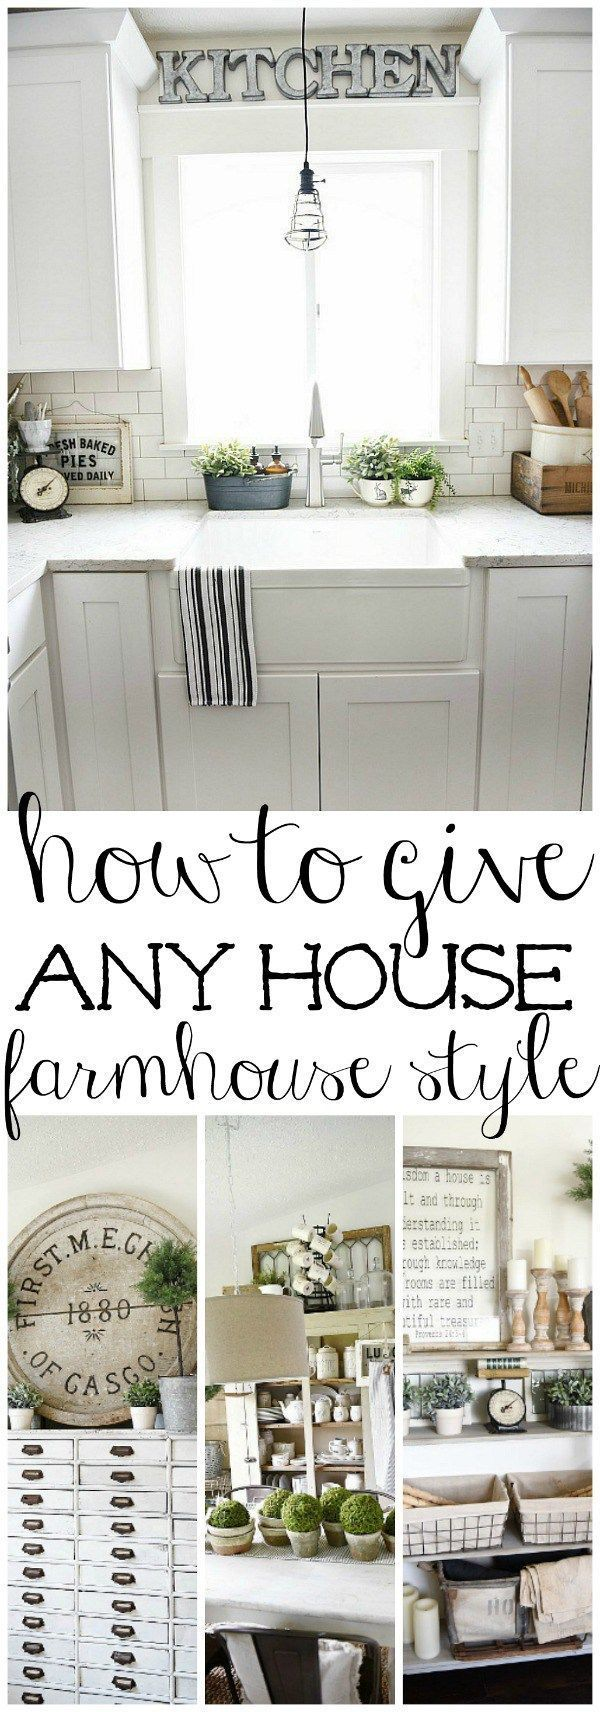 best 25+ farmhouse kitchens ideas on pinterest | white farmhouse